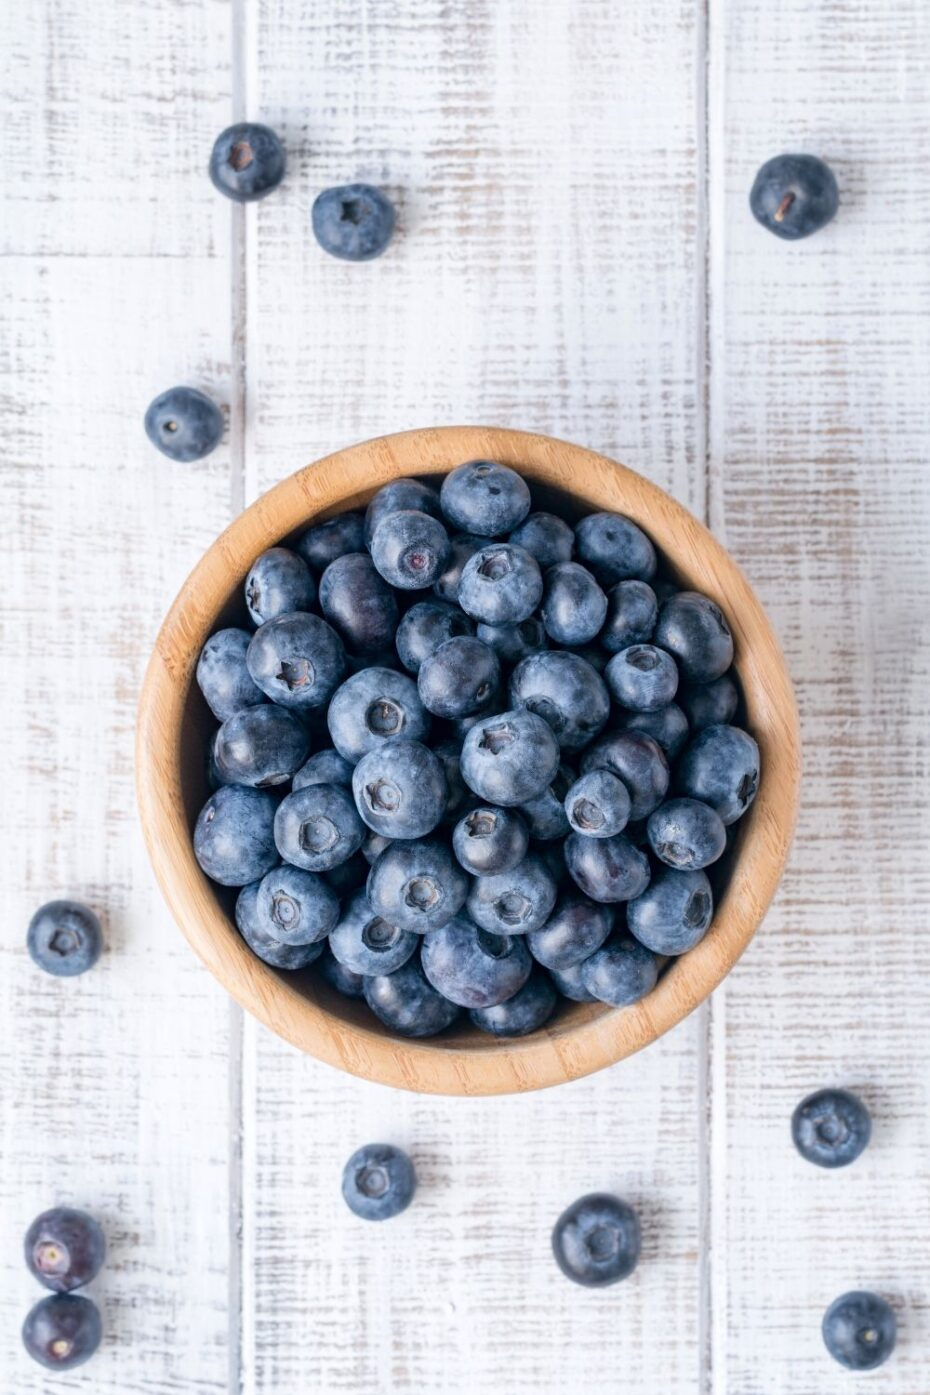 Brown wooden bowl in the middle of a white washed wooden board full of blueberries. Some are scattered around